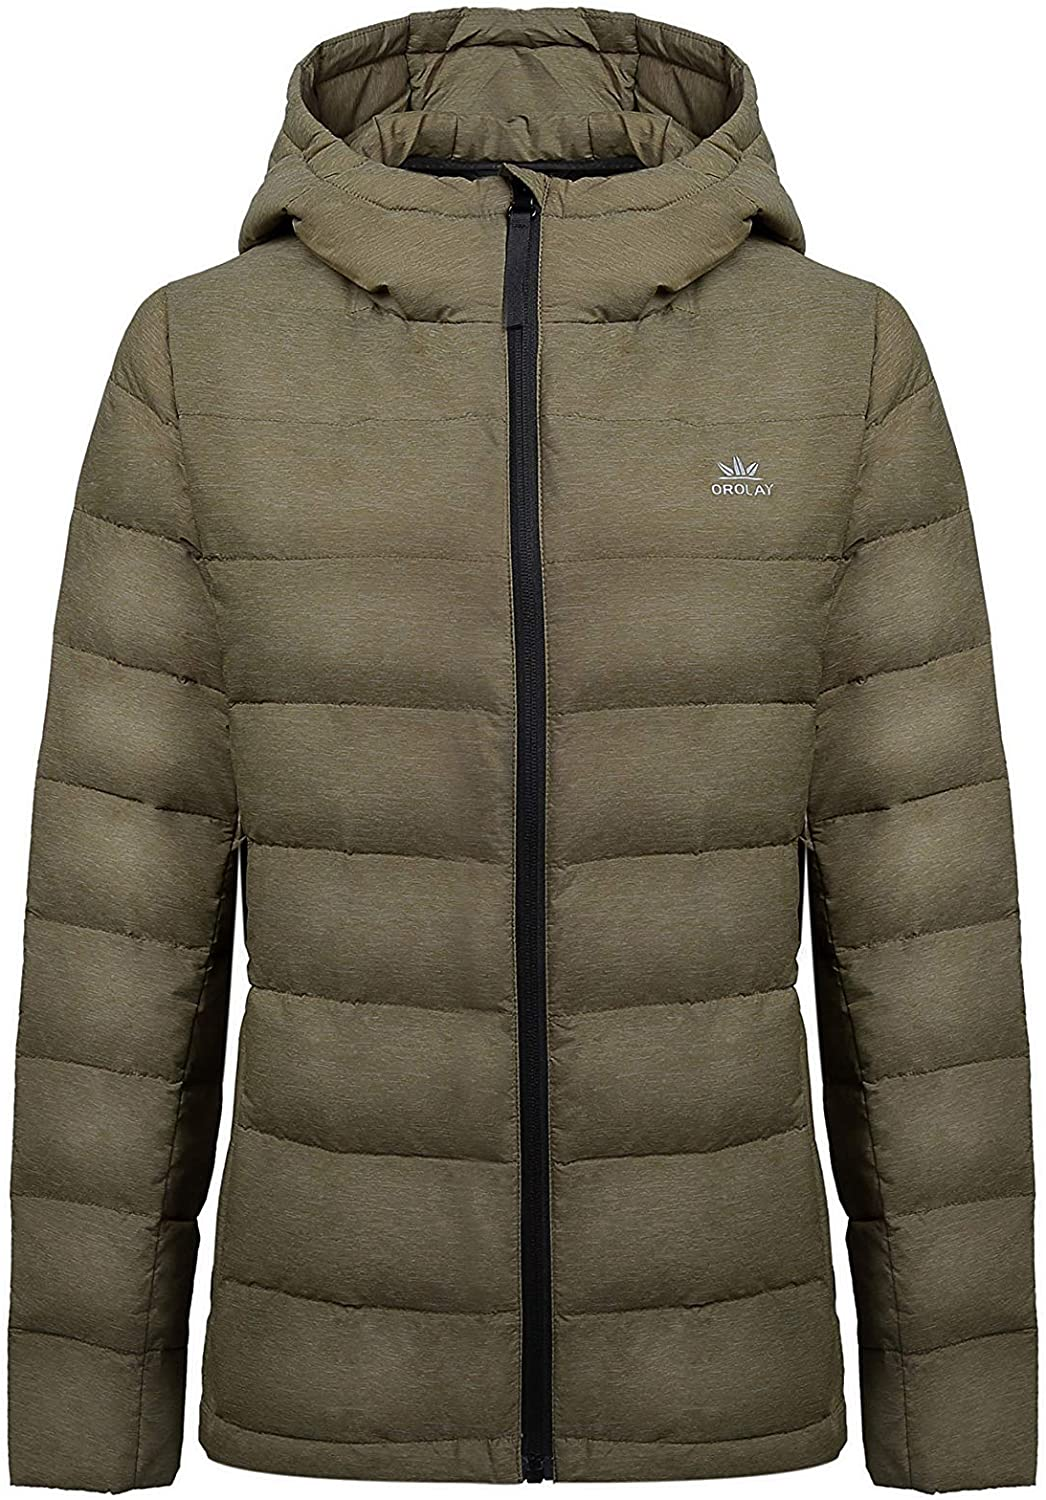 Orolay Women's Hooded Down Coat Short Puffer Jacket